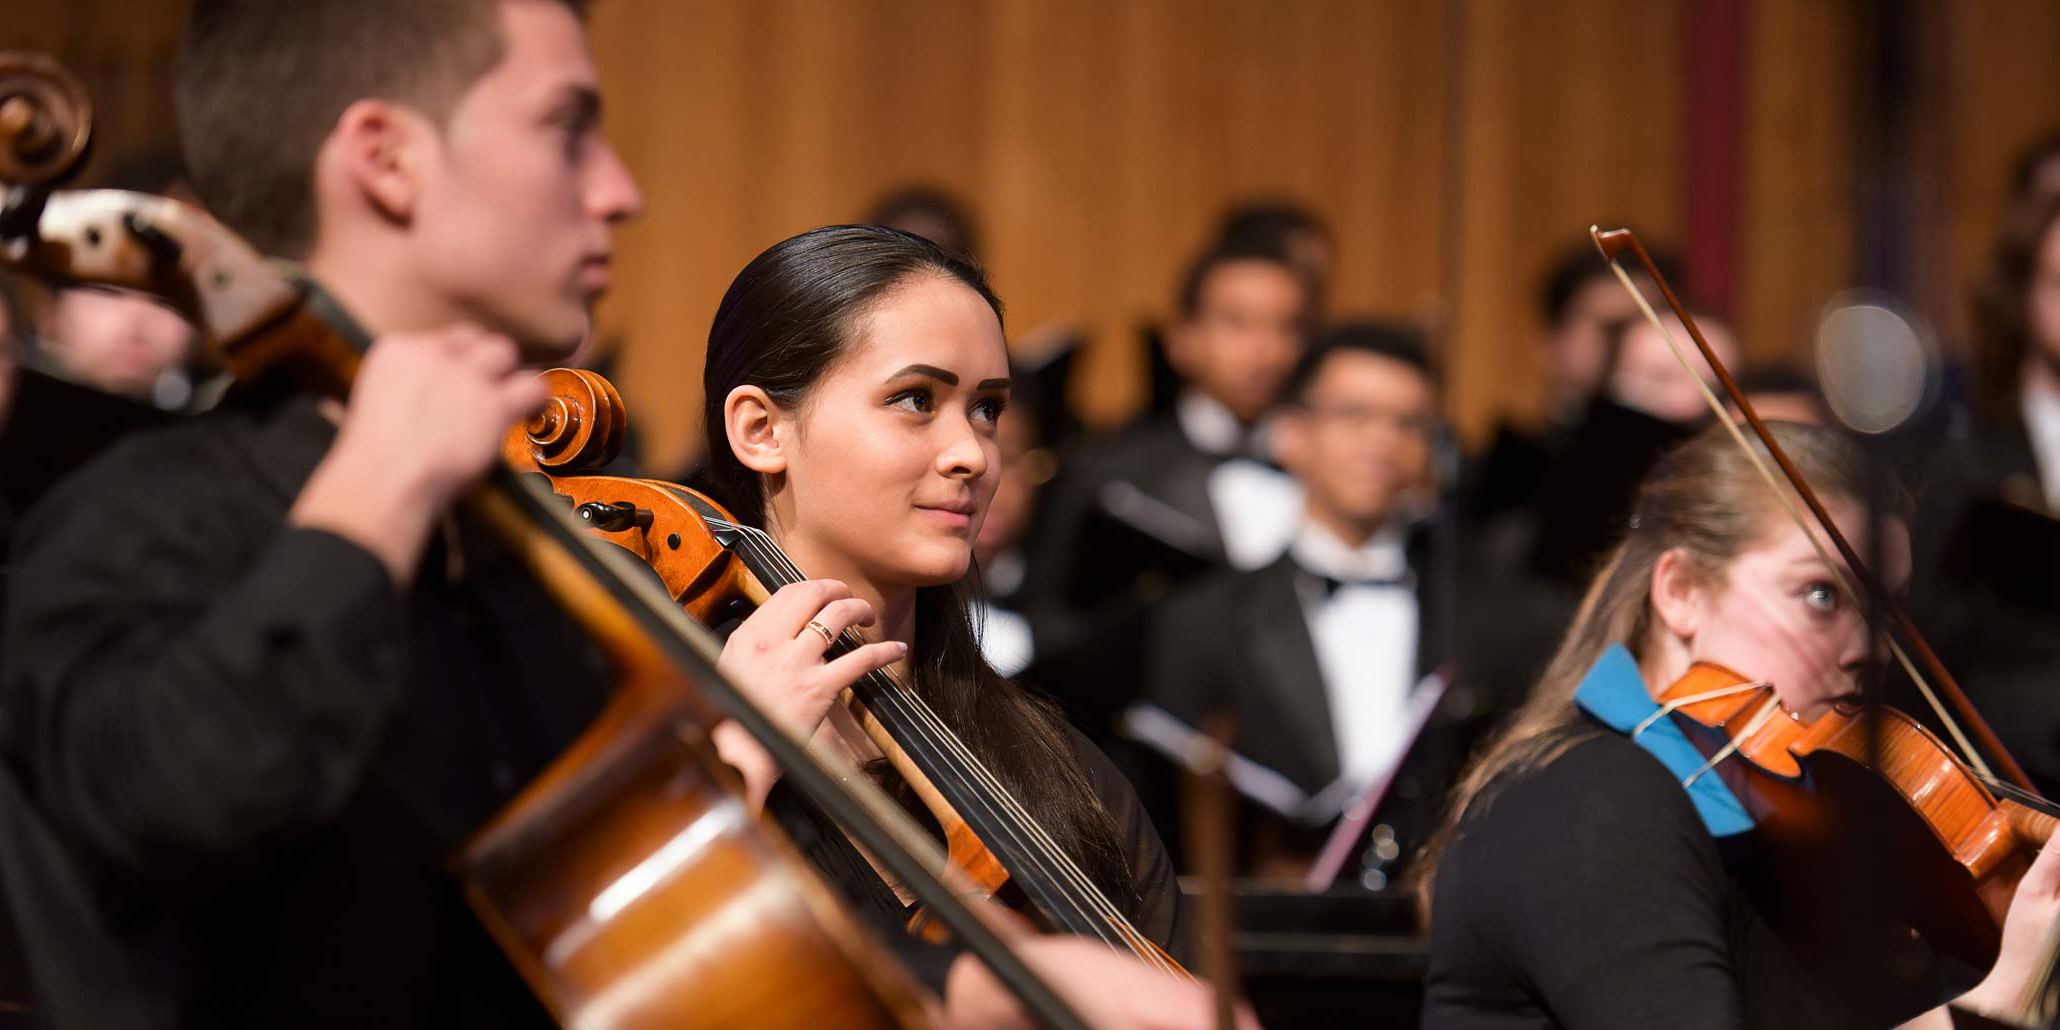 Photo of orchestra students playing cello.